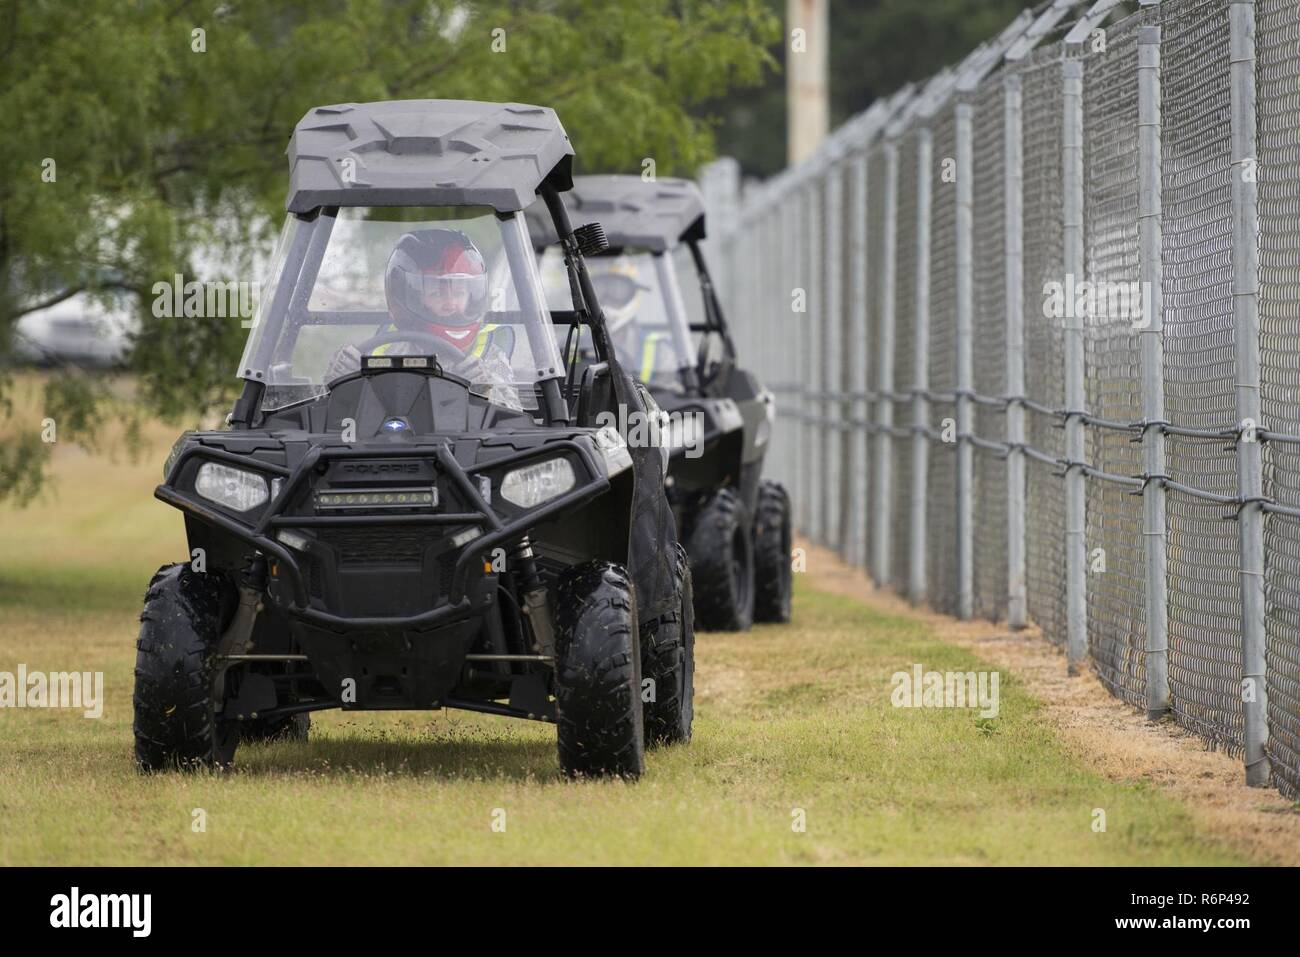 Technical Sgt. Michelle Aberle, 802nd Security Forces Squadron installation security, and Technical Sgt. Paul Turner, 802nd Security Forces Squadron installation security, drive along the base fence line during a security check May 9, 2017, at Joint Base San Antonio-Lackland, Texas.  Aberle and Turner provide force protection for base personnel, equipment and facilities from threats to include intrusion by unauthorized people. - Stock Image